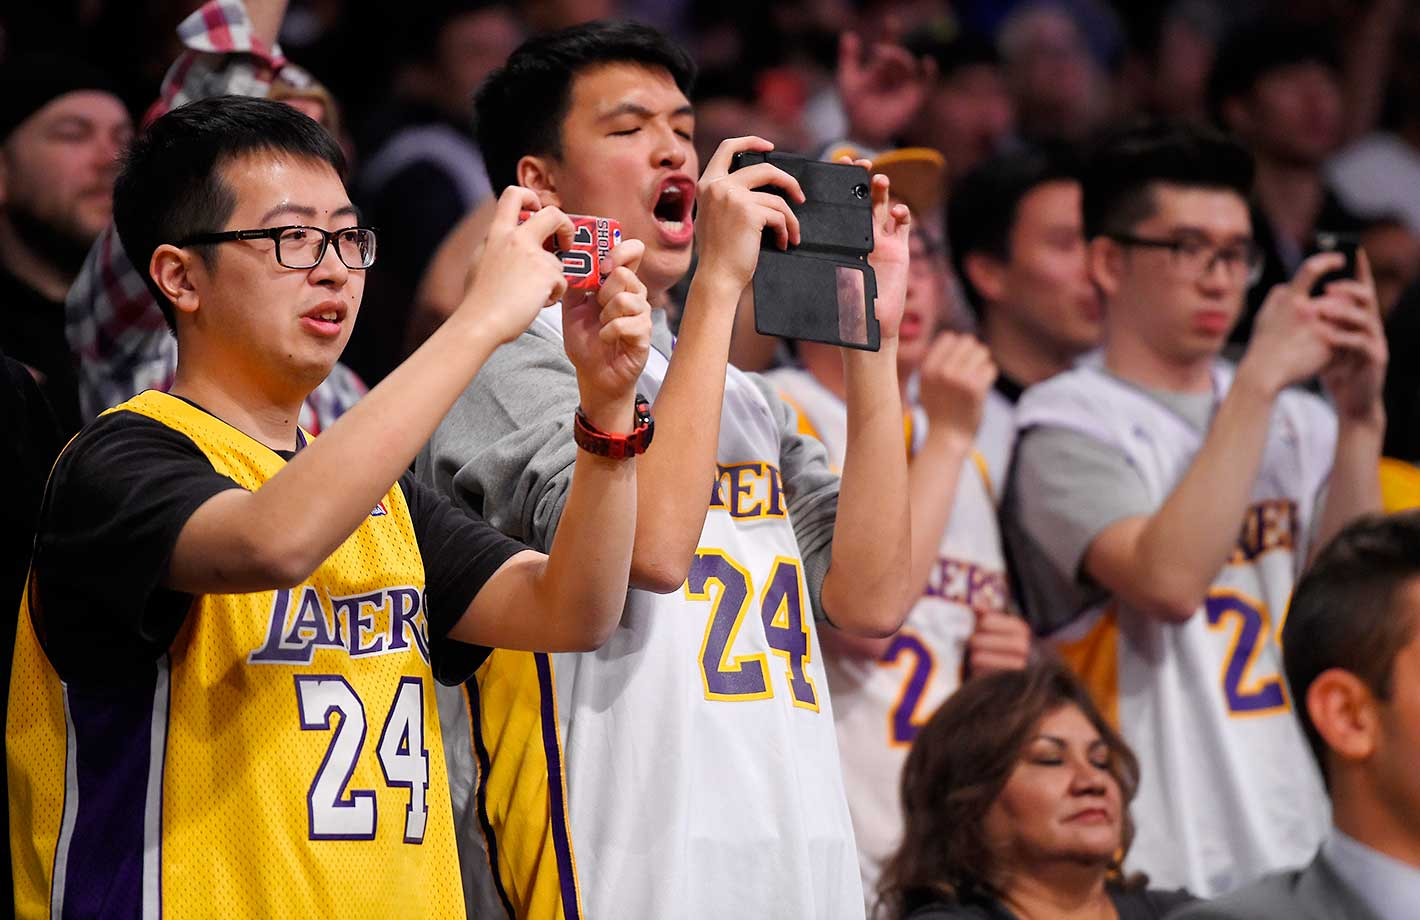 Fans wearing Kobe Bryant jerseys take photos in Los Angeles. The Lakers won 119-115.